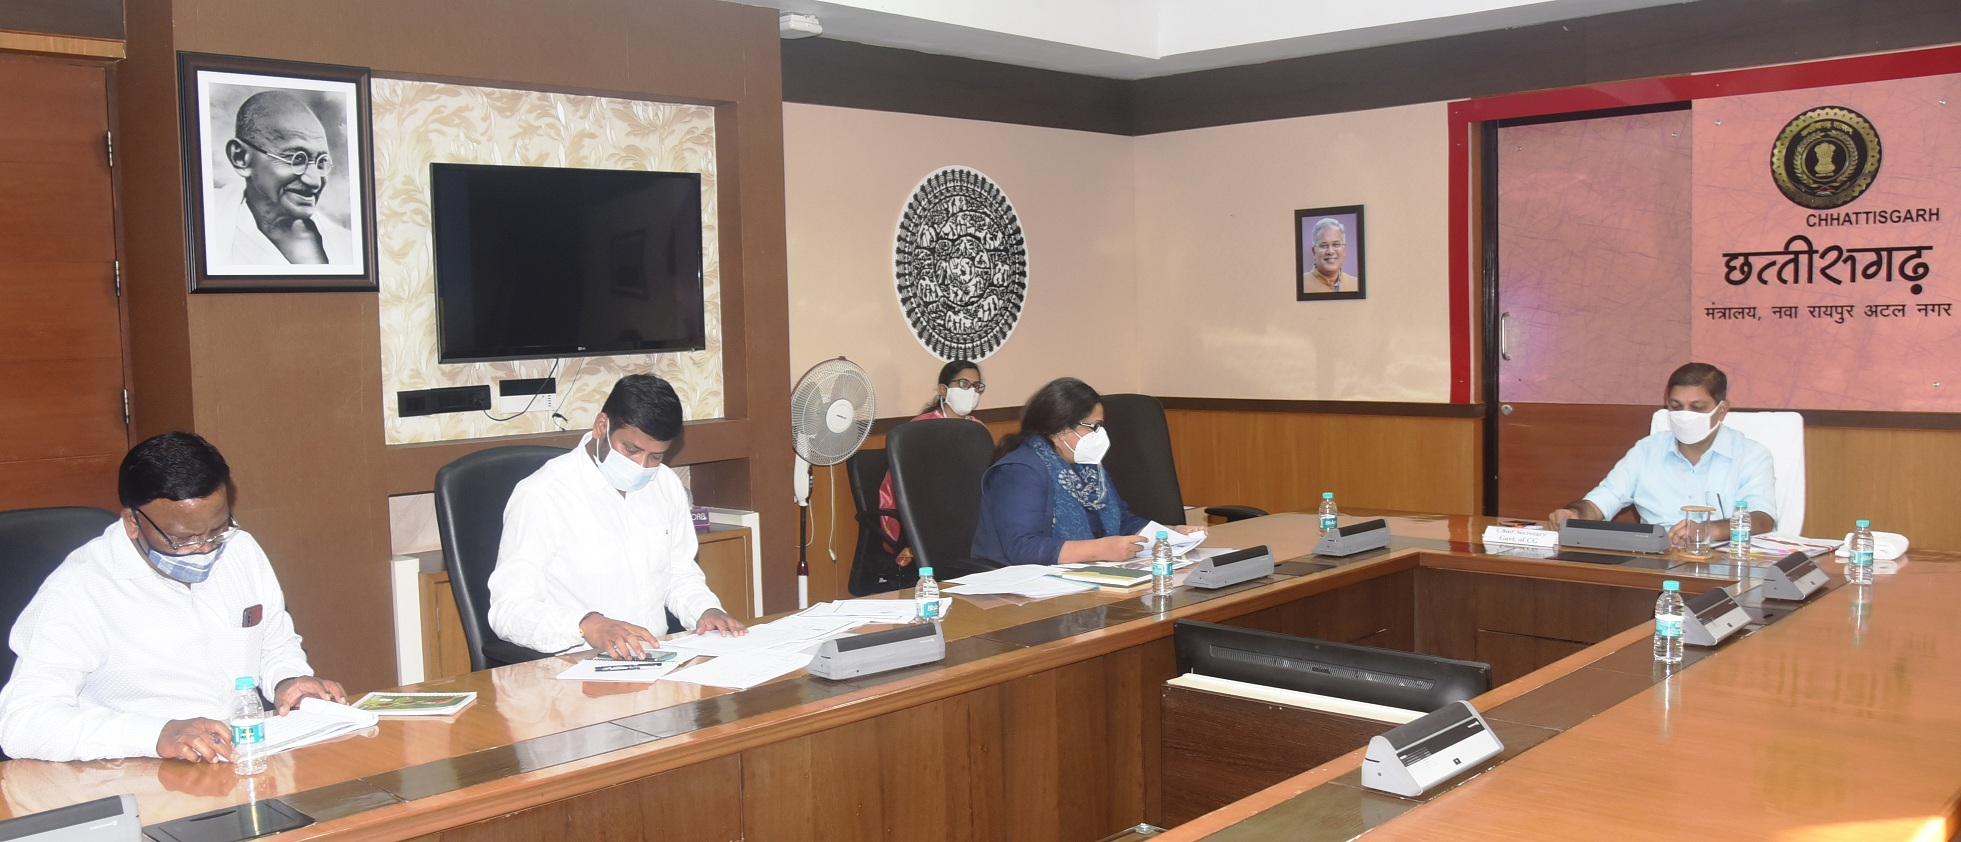 The Gothans of the state will be geotagging, Chief Secretary took information about the scheme